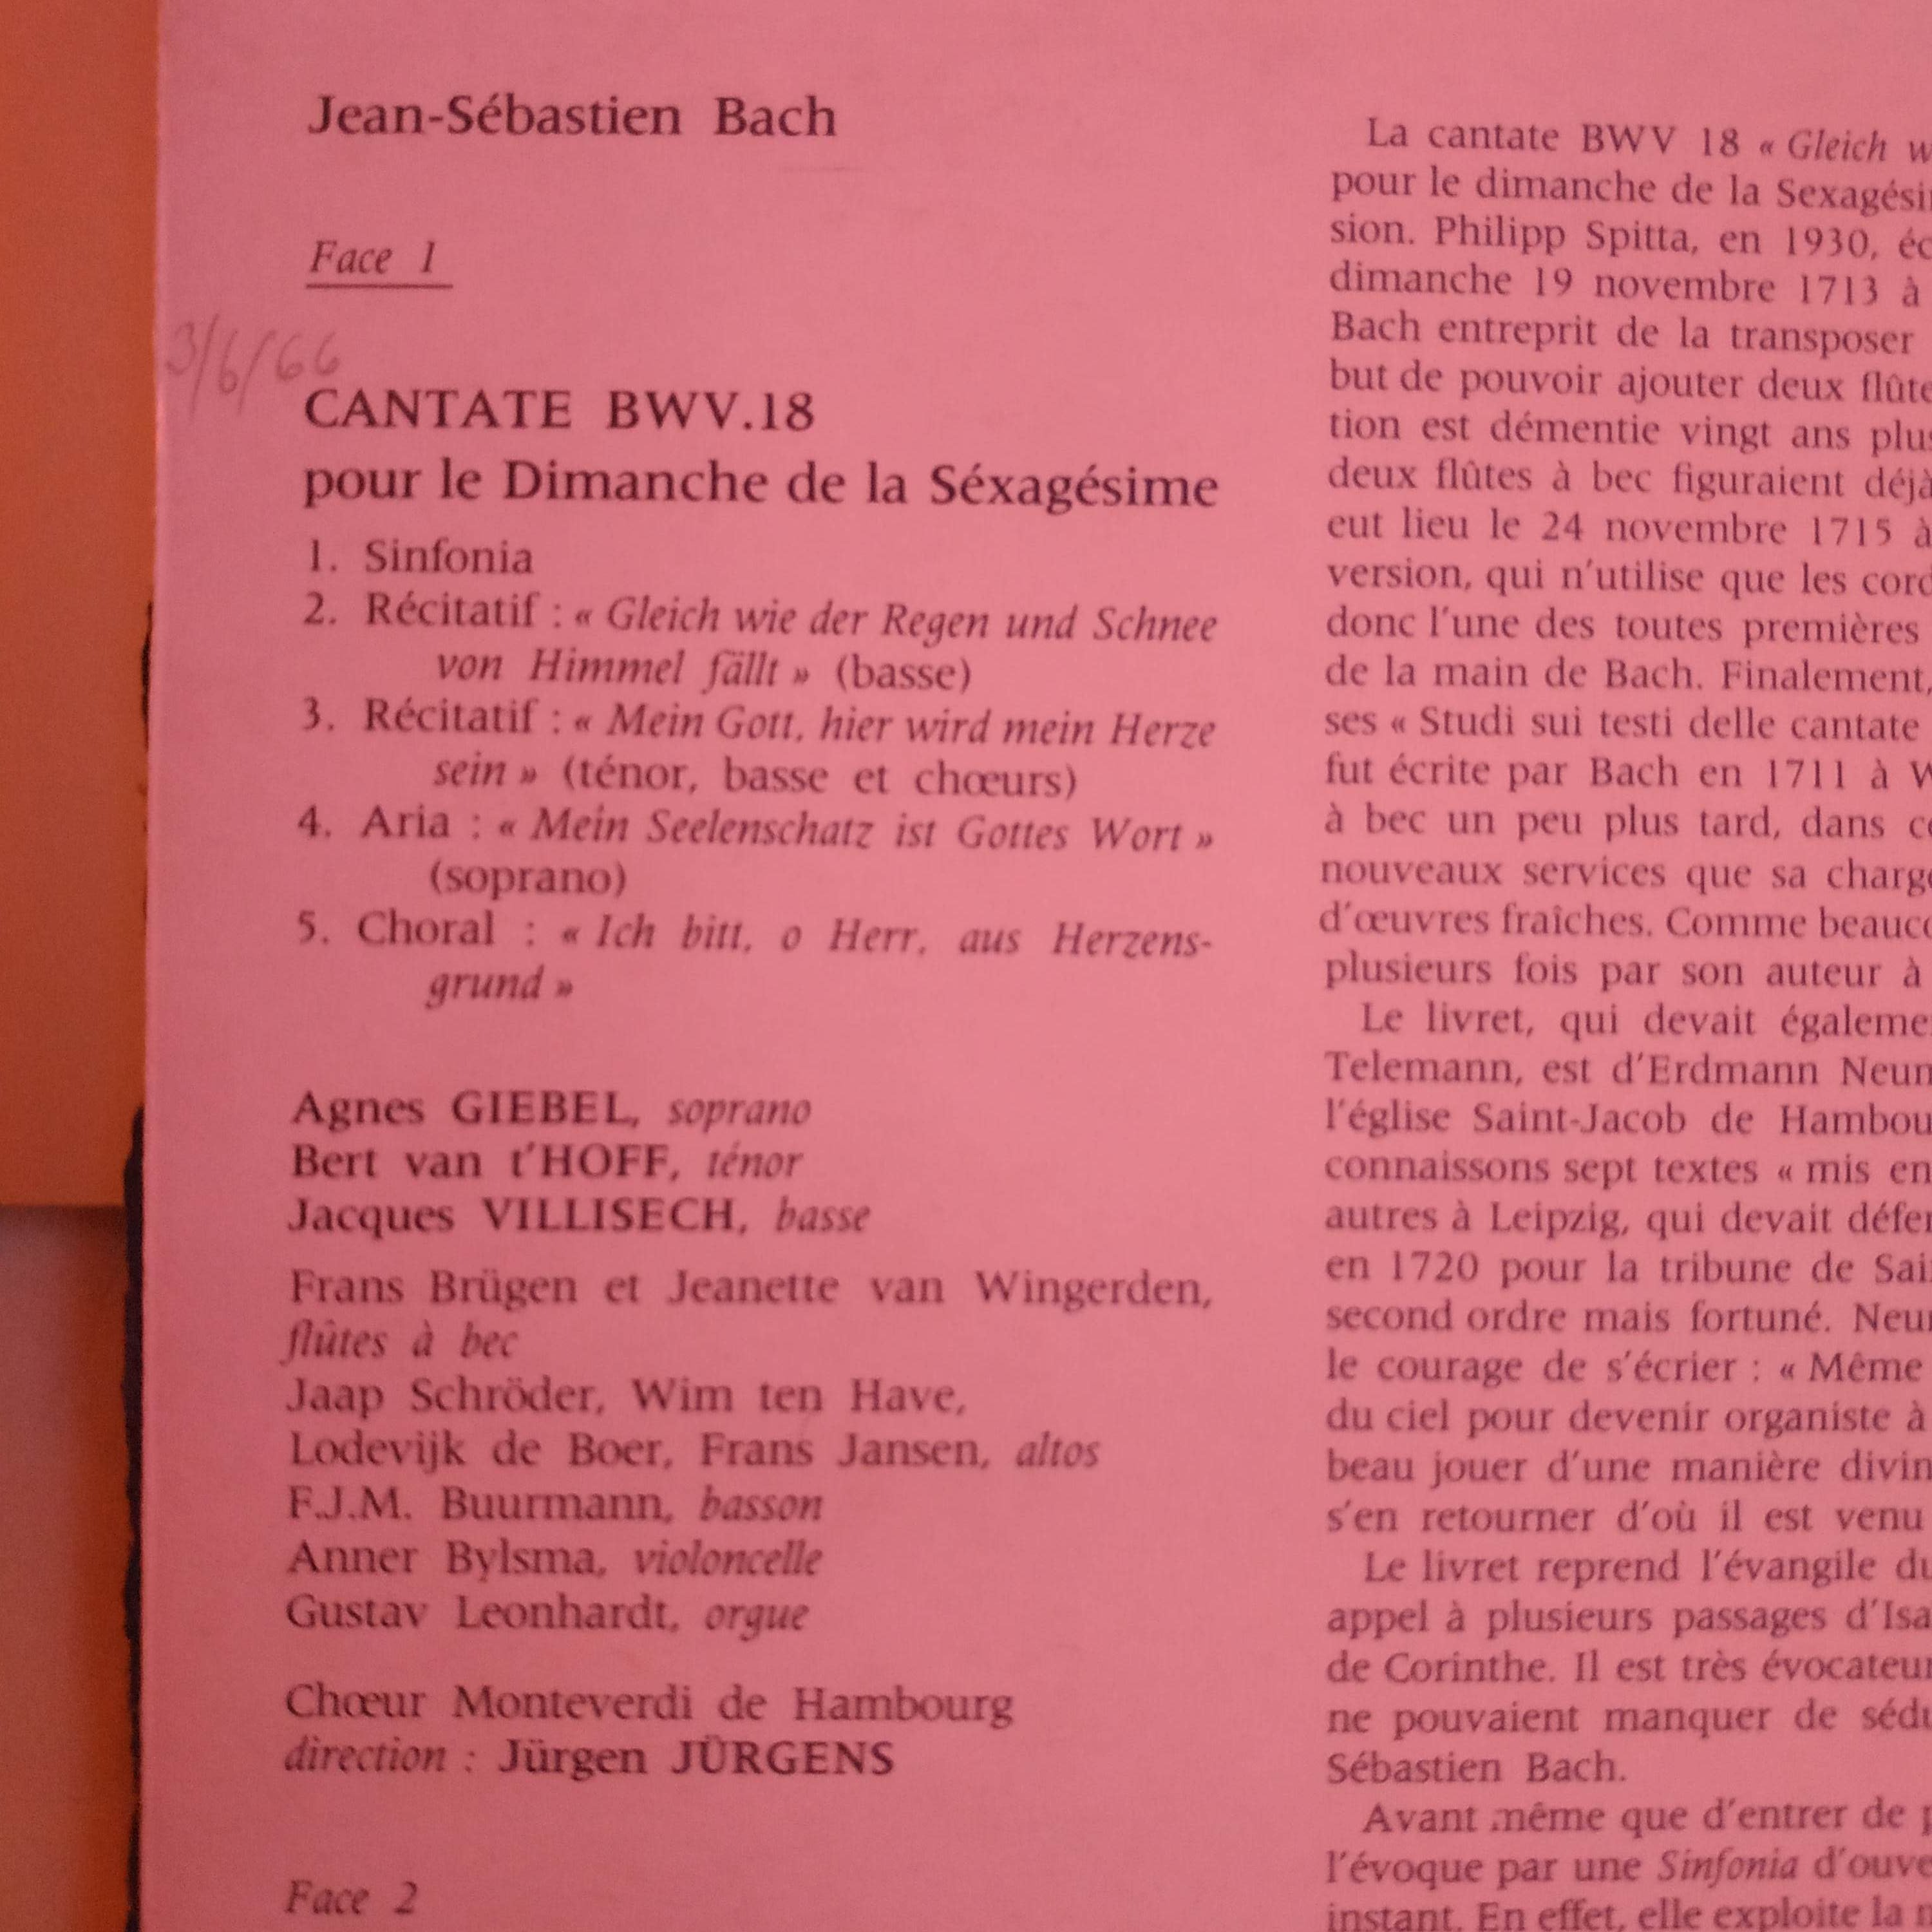 Cantata BWV 18 - Details & Discography Part 1: Complete